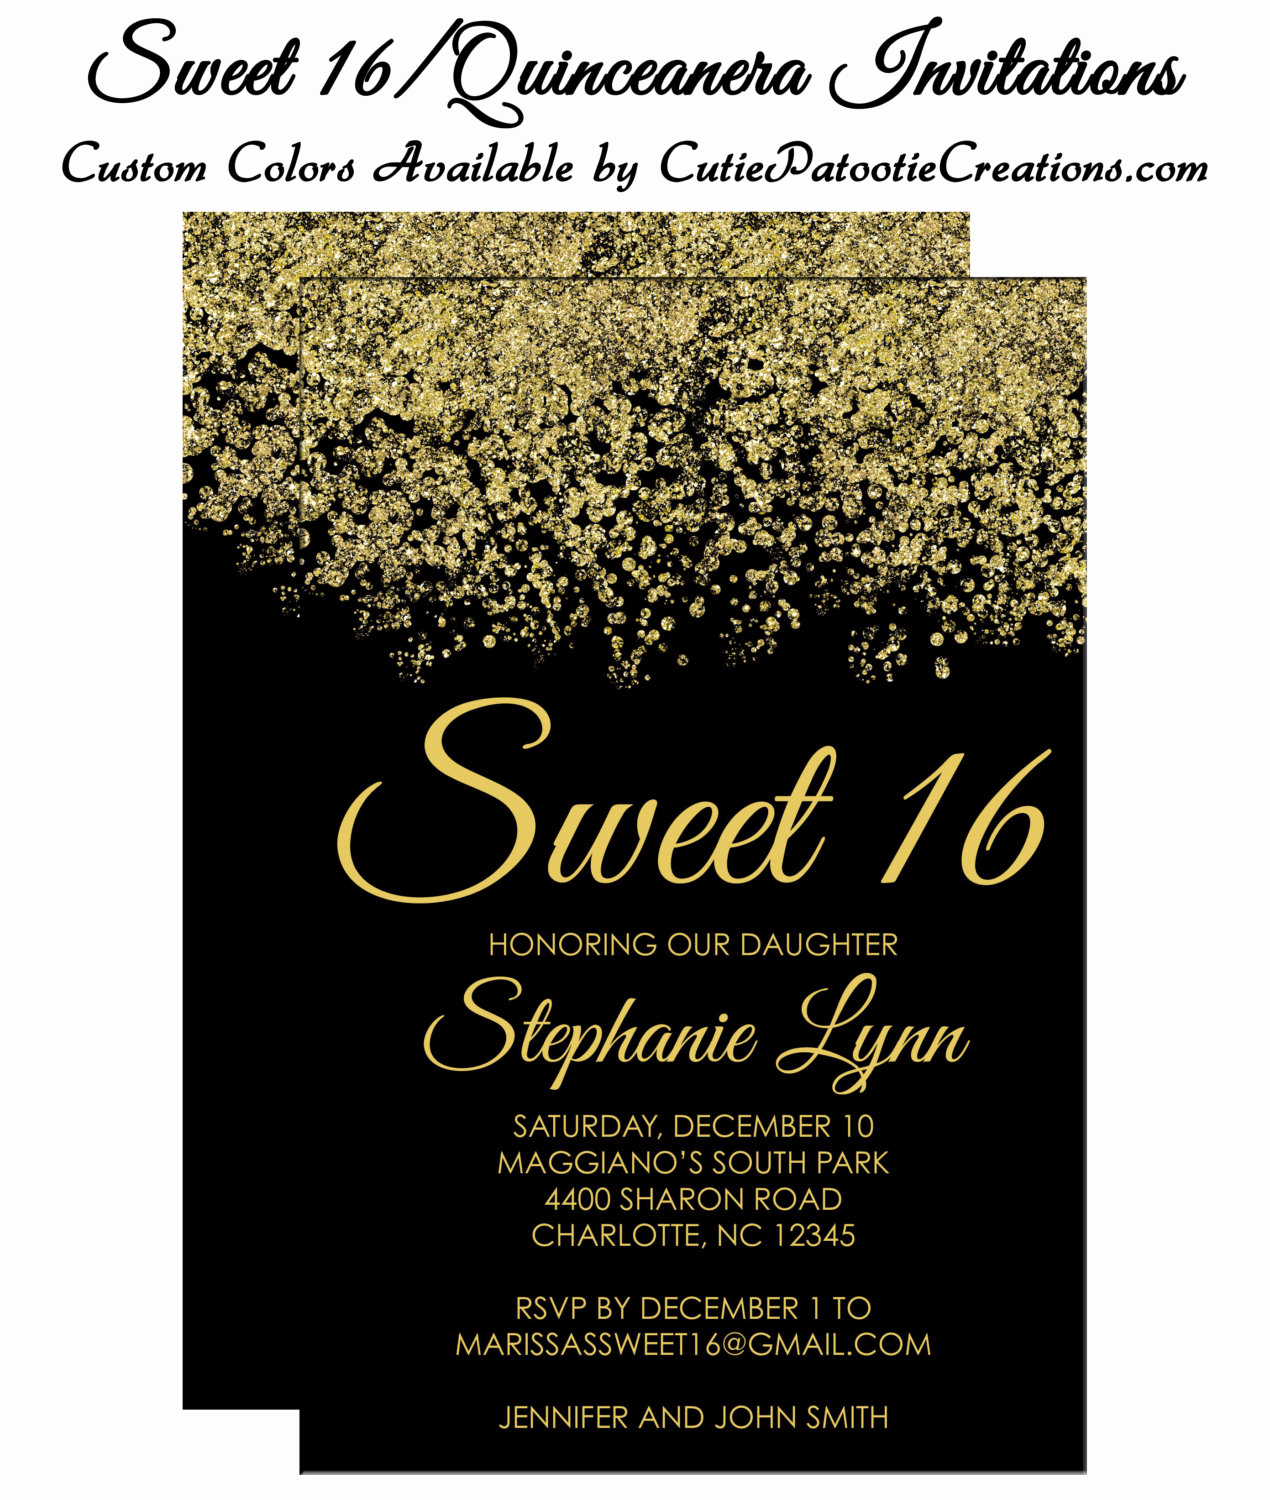 Sweet 16 Invitation Cards Fresh Sweet 16 Invitations Quinceanera Invitation Black and Gold